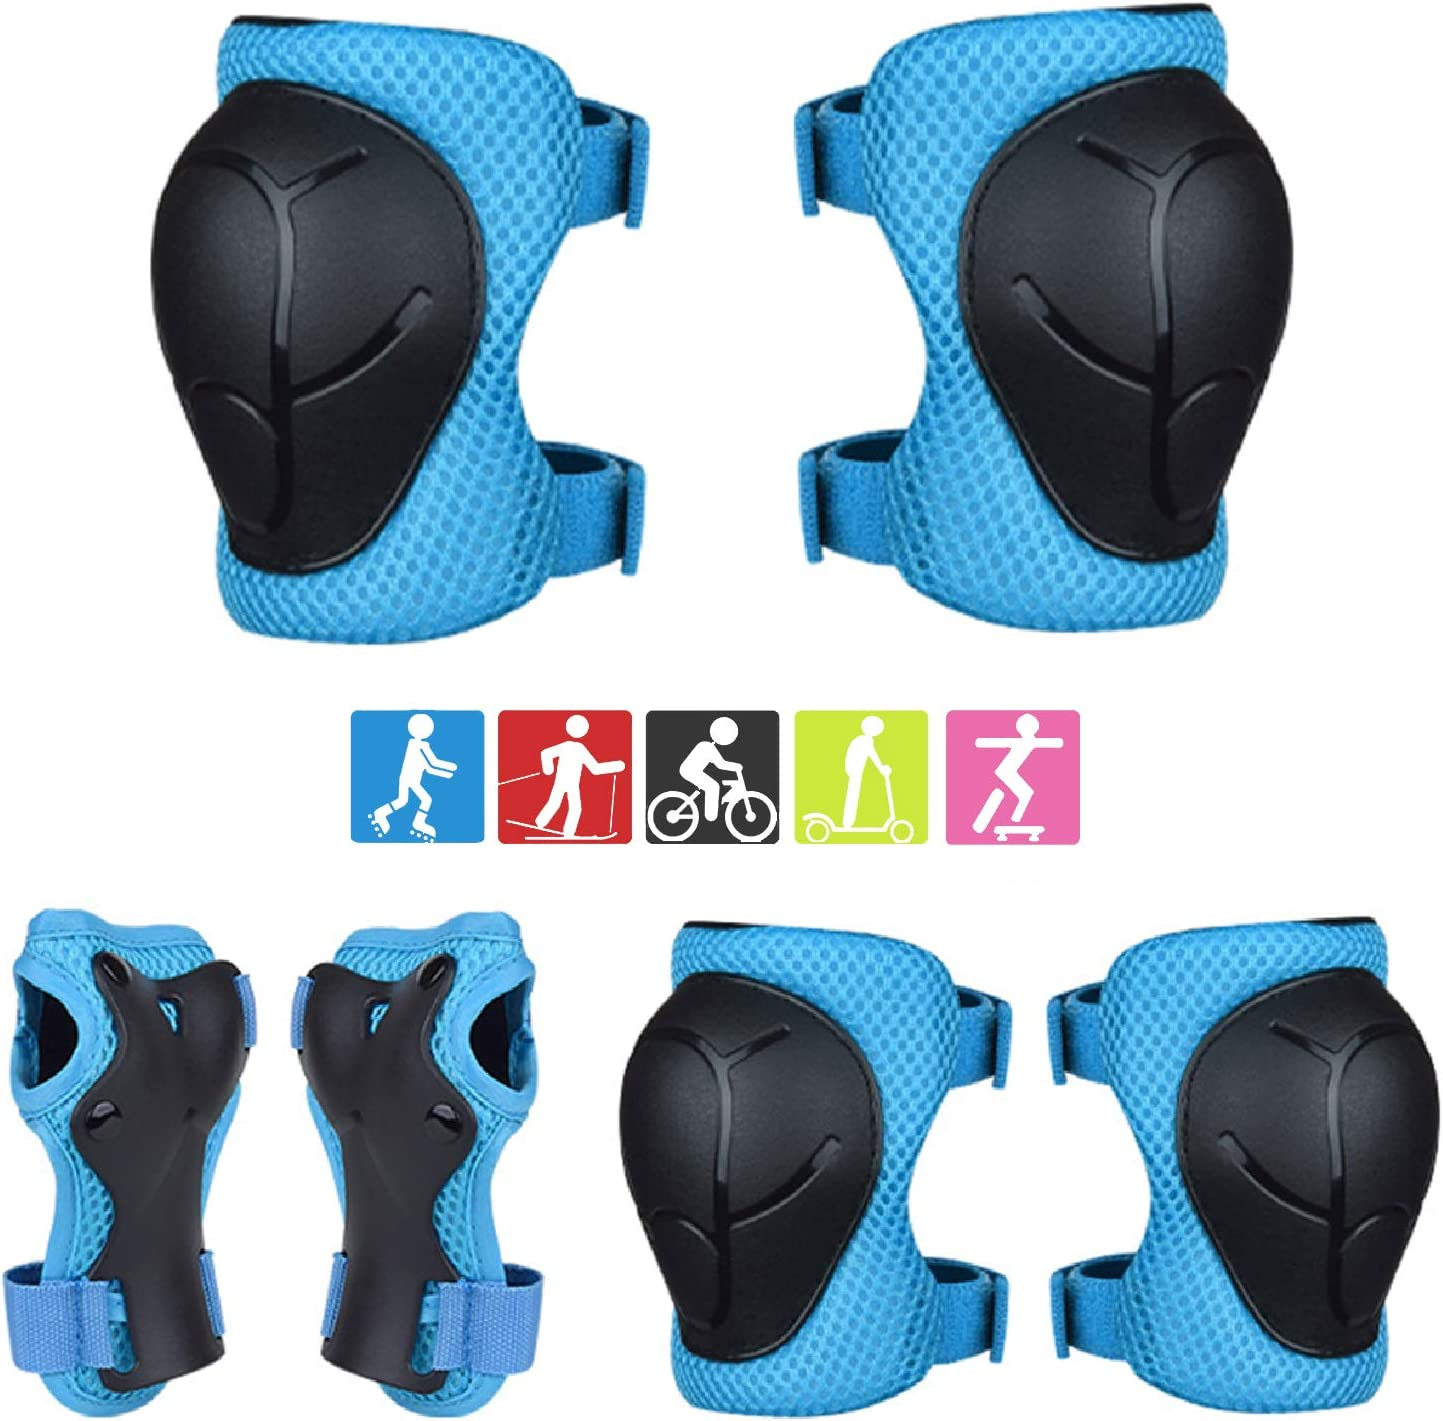 Kids Protective Gear,Include Knee Pads,Elbow Pads,Wrist Guard 6 in 1 Set for Kids,Offer Full Protective for Rollerblading Skateboard Cycling Skating Bike Scooter